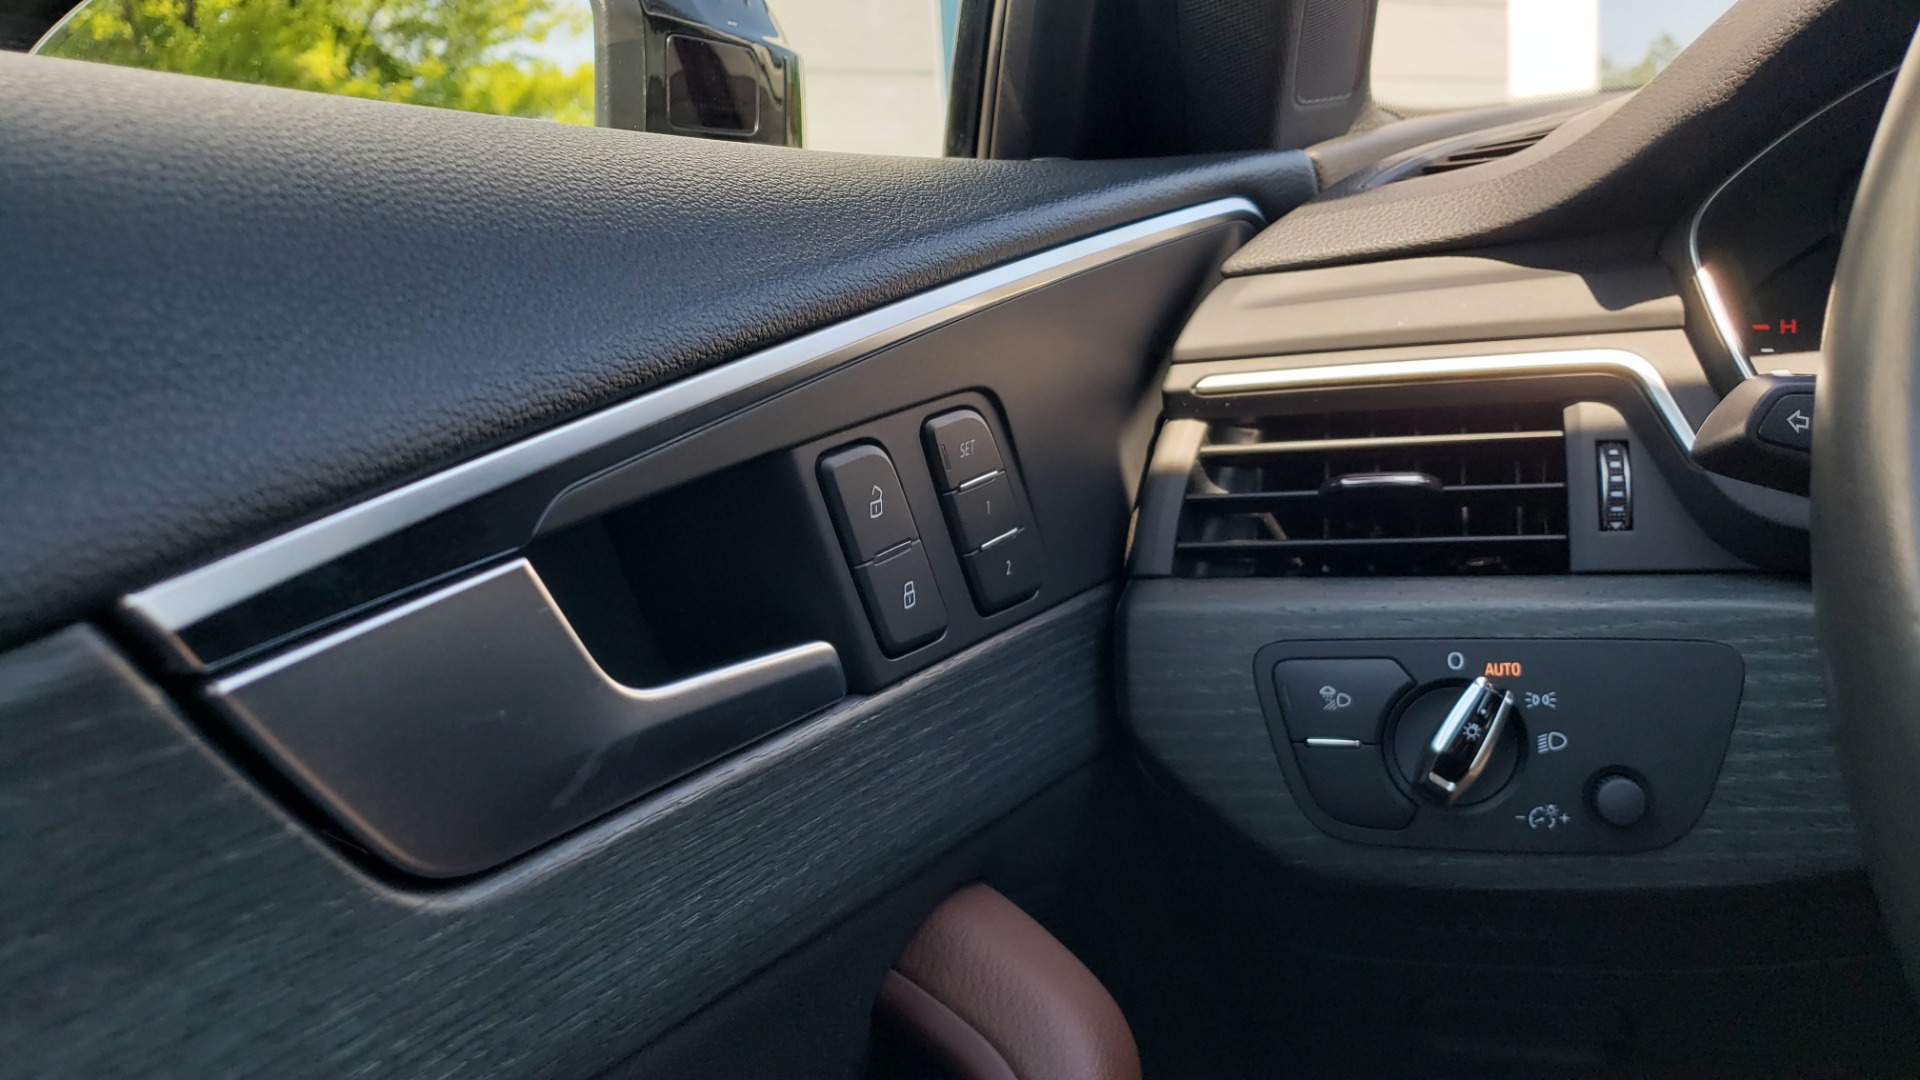 Used 2018 Audi A4 PREMIUM PLUS 2.0T / NAV / SUNROOF / B&O SND / CLD WTHR / REARVIEW for sale $30,695 at Formula Imports in Charlotte NC 28227 36